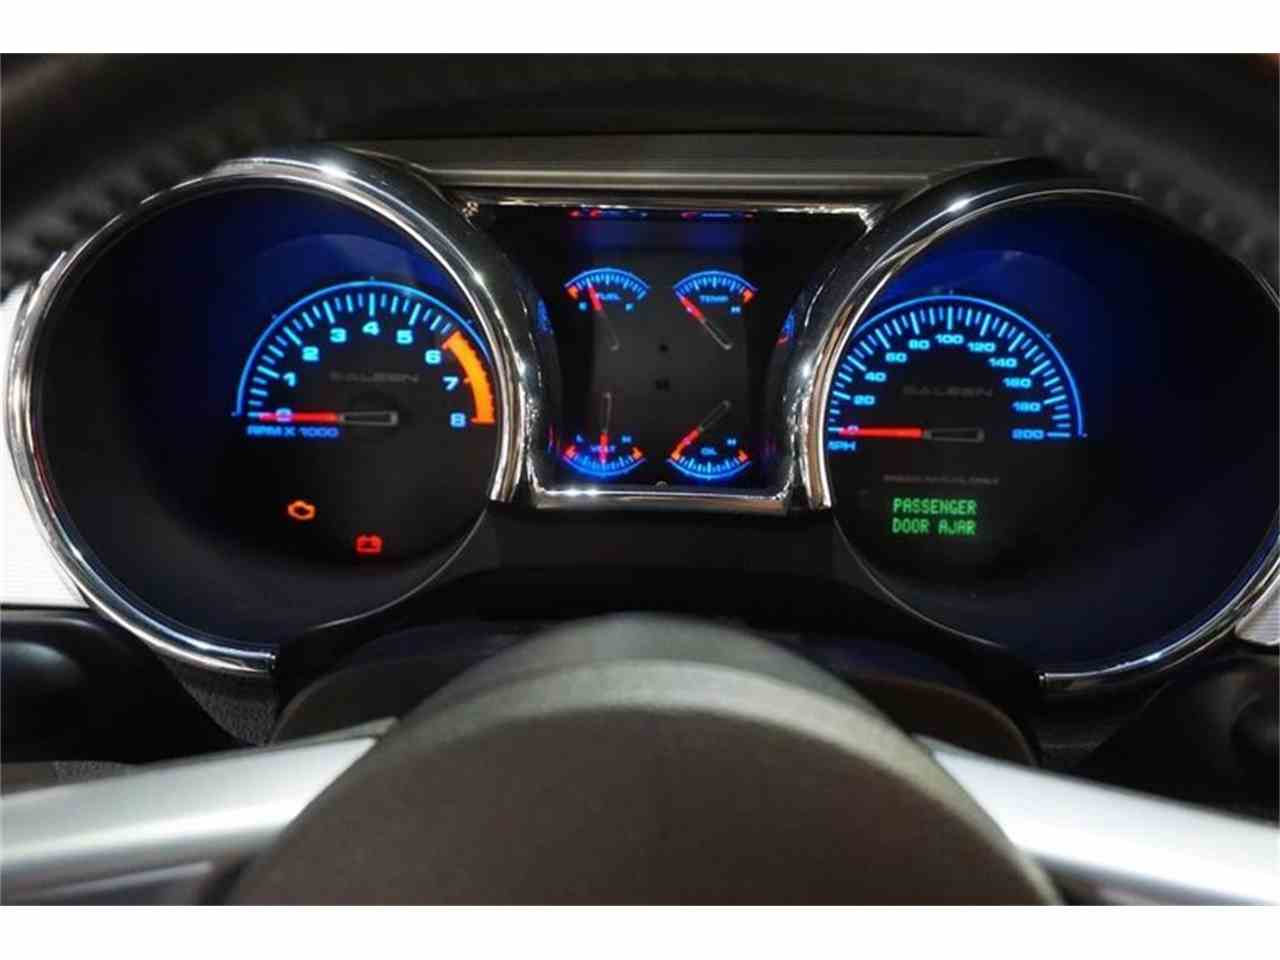 Large Picture of '06 Ford Mustang located in Ohio Offered by R&H Motor Car Group - MC5Z